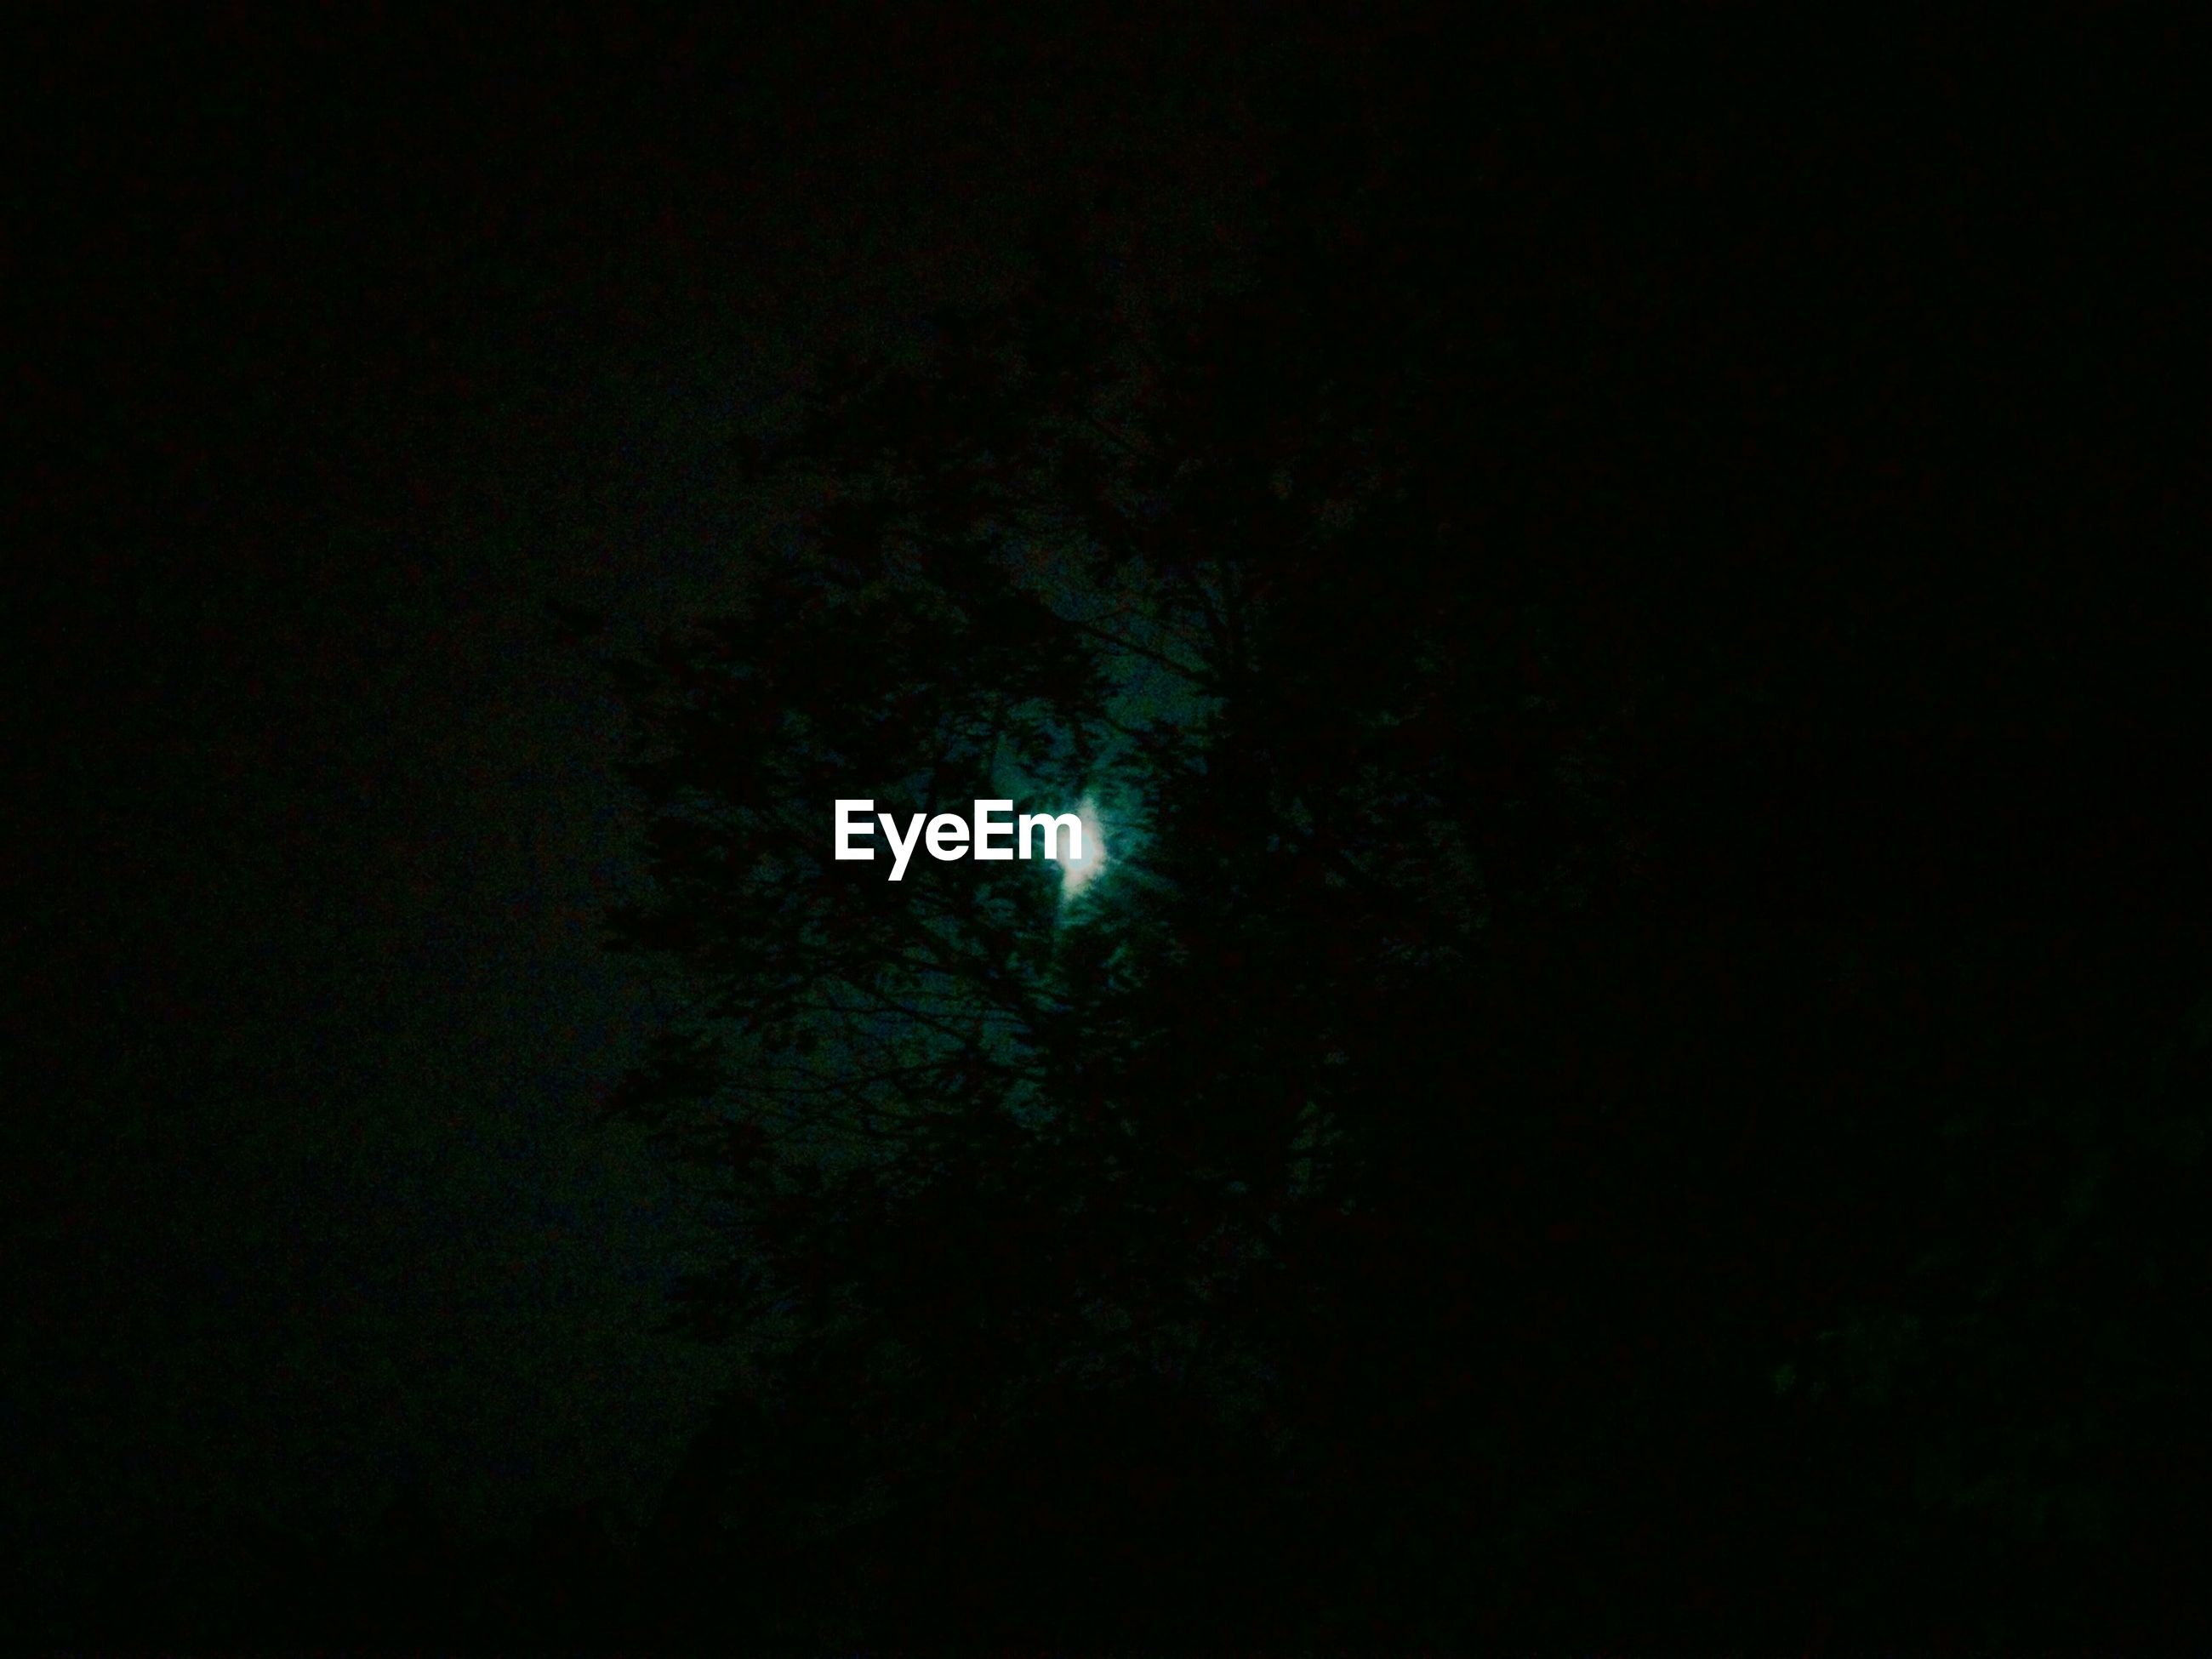 night, dark, copy space, low angle view, tranquility, beauty in nature, tranquil scene, astronomy, scenics, nature, backgrounds, moon, star - space, sky, idyllic, no people, space, mystery, outdoors, black background